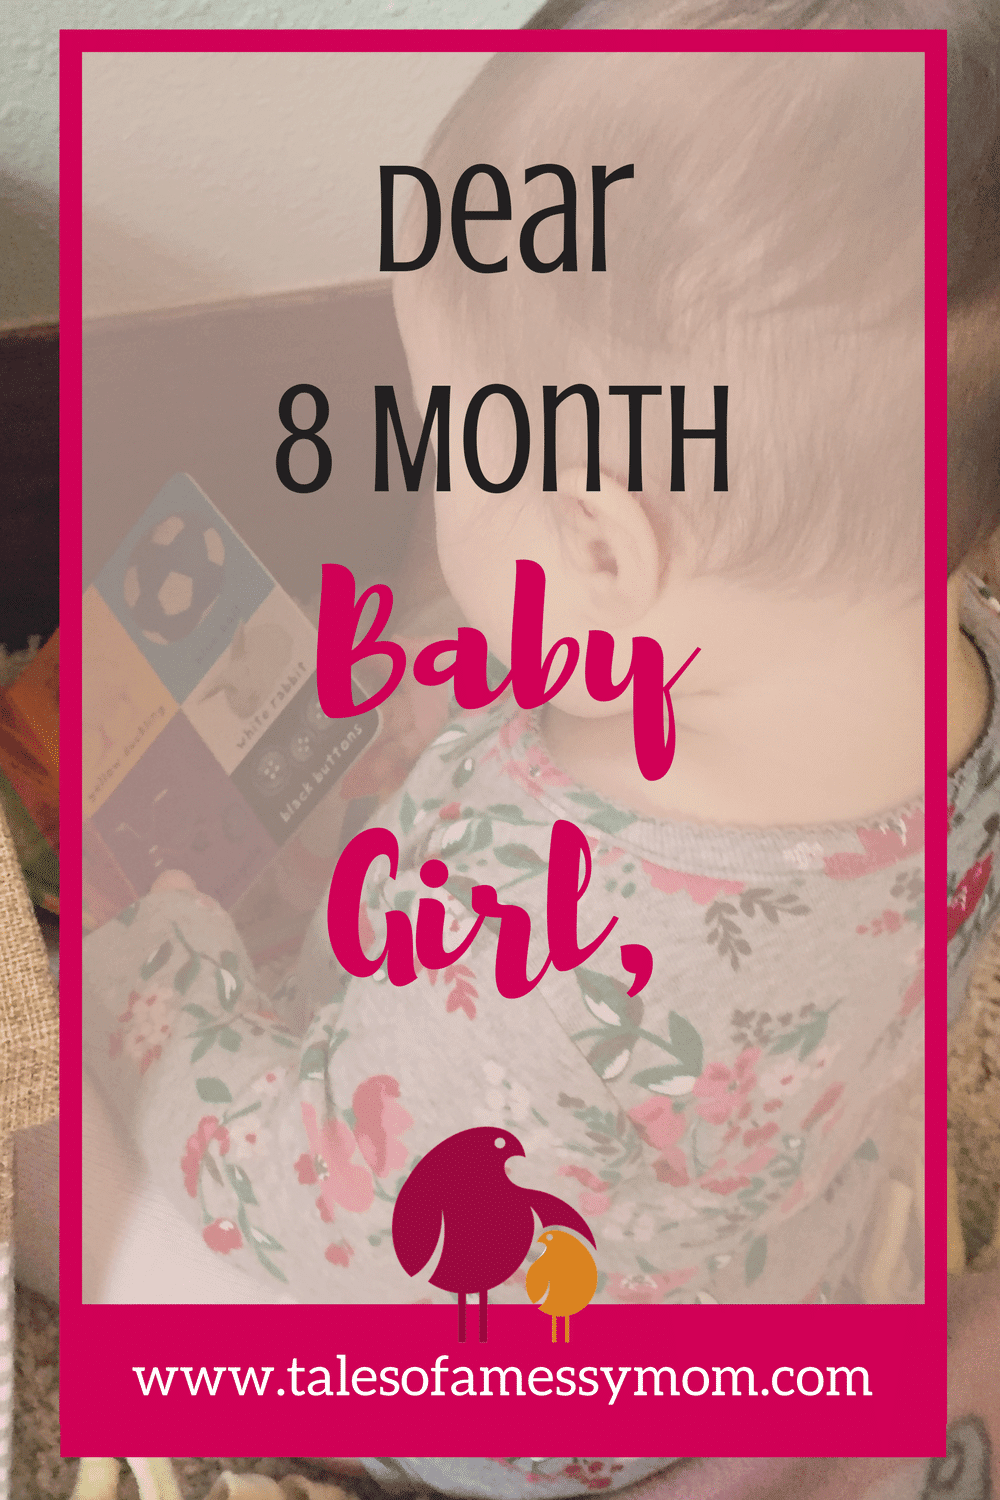 A touching letter to my 8 month baby girl. http://www.talesofamessymom.com